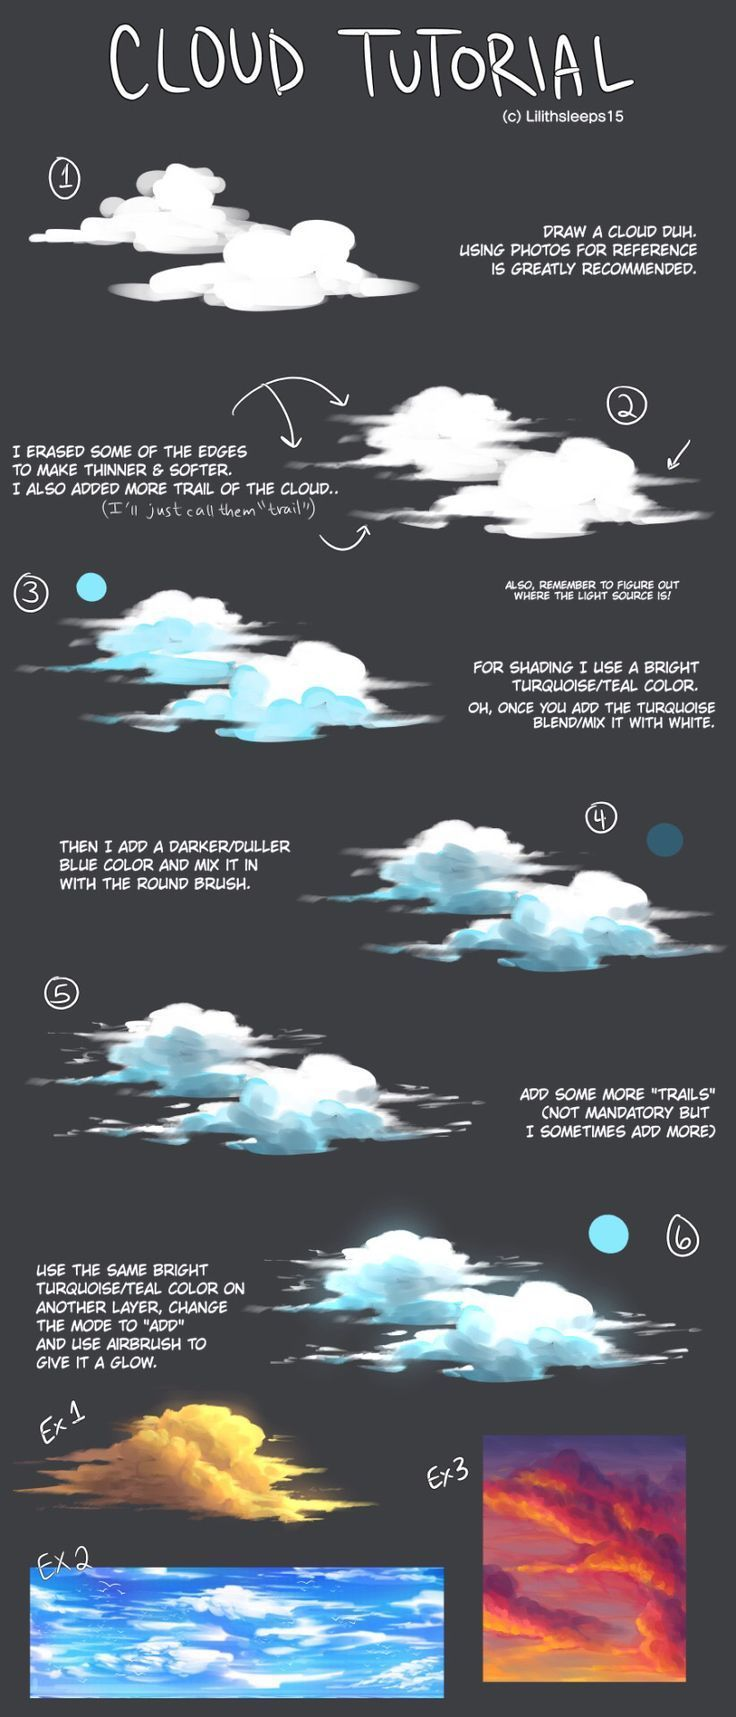 Photo of Cloud tutorial by lilithsleeps on tumblr